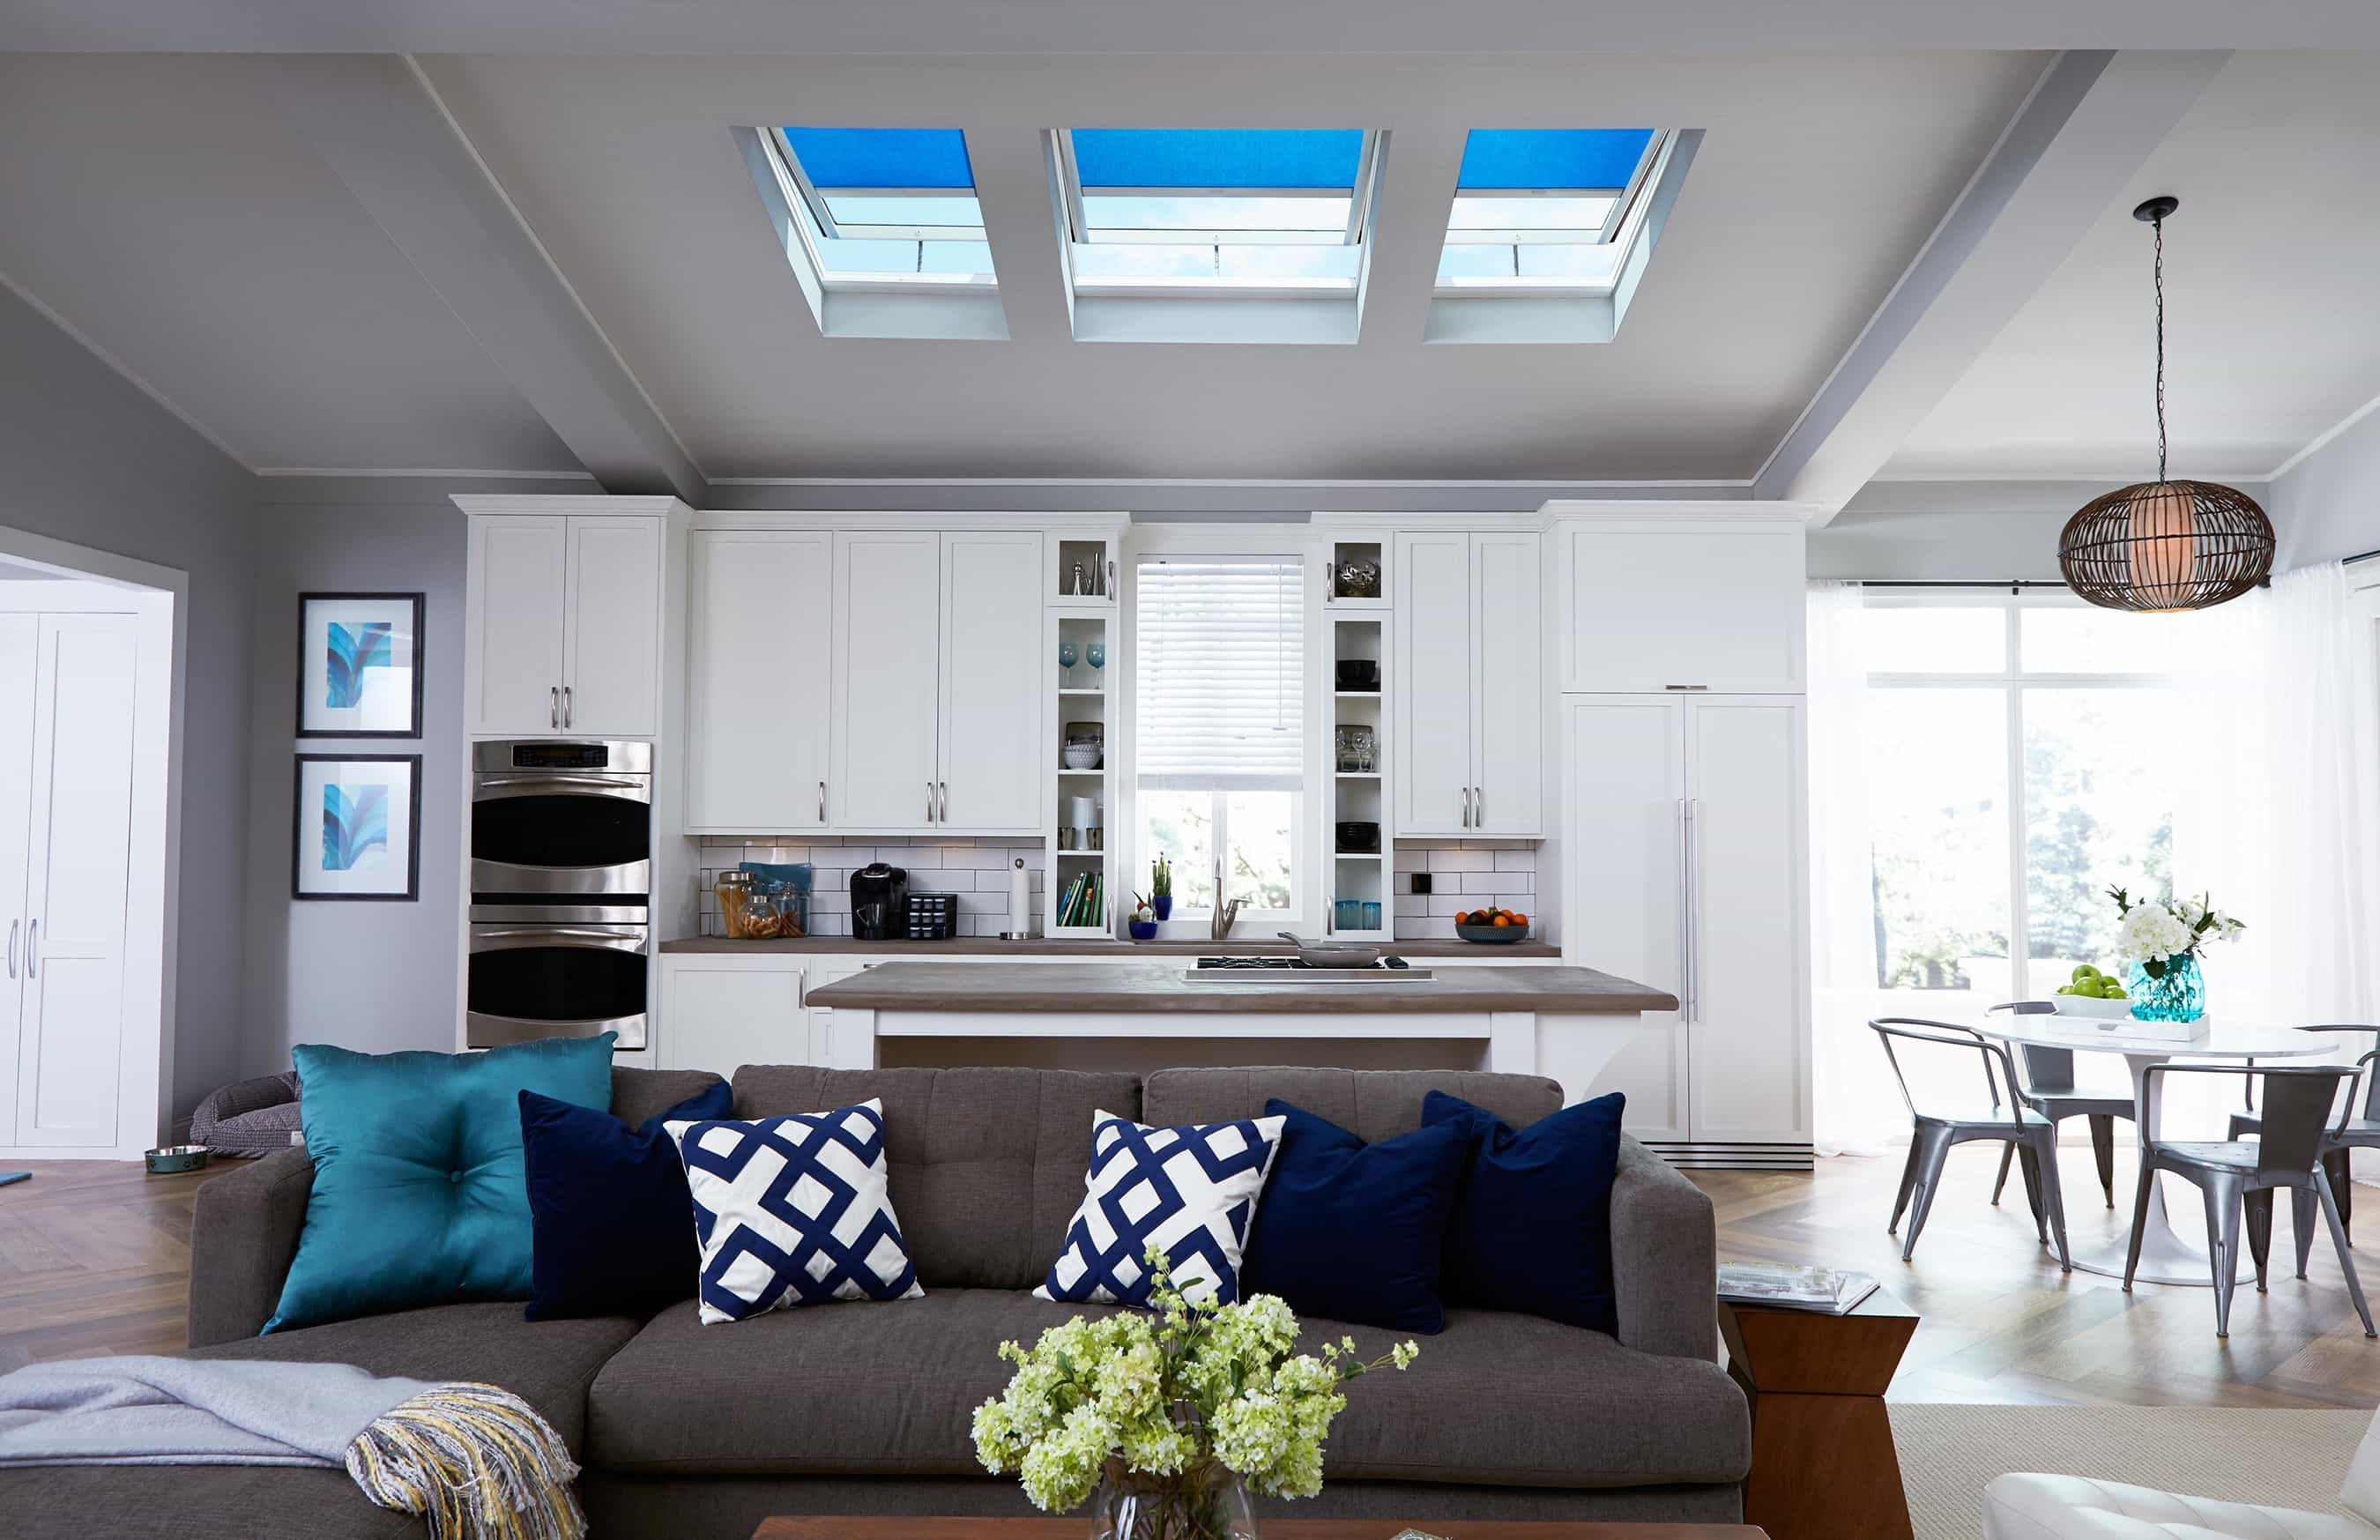 25 Best Skylights Blinds And Shades Ideas 22172 Tips Ideas .